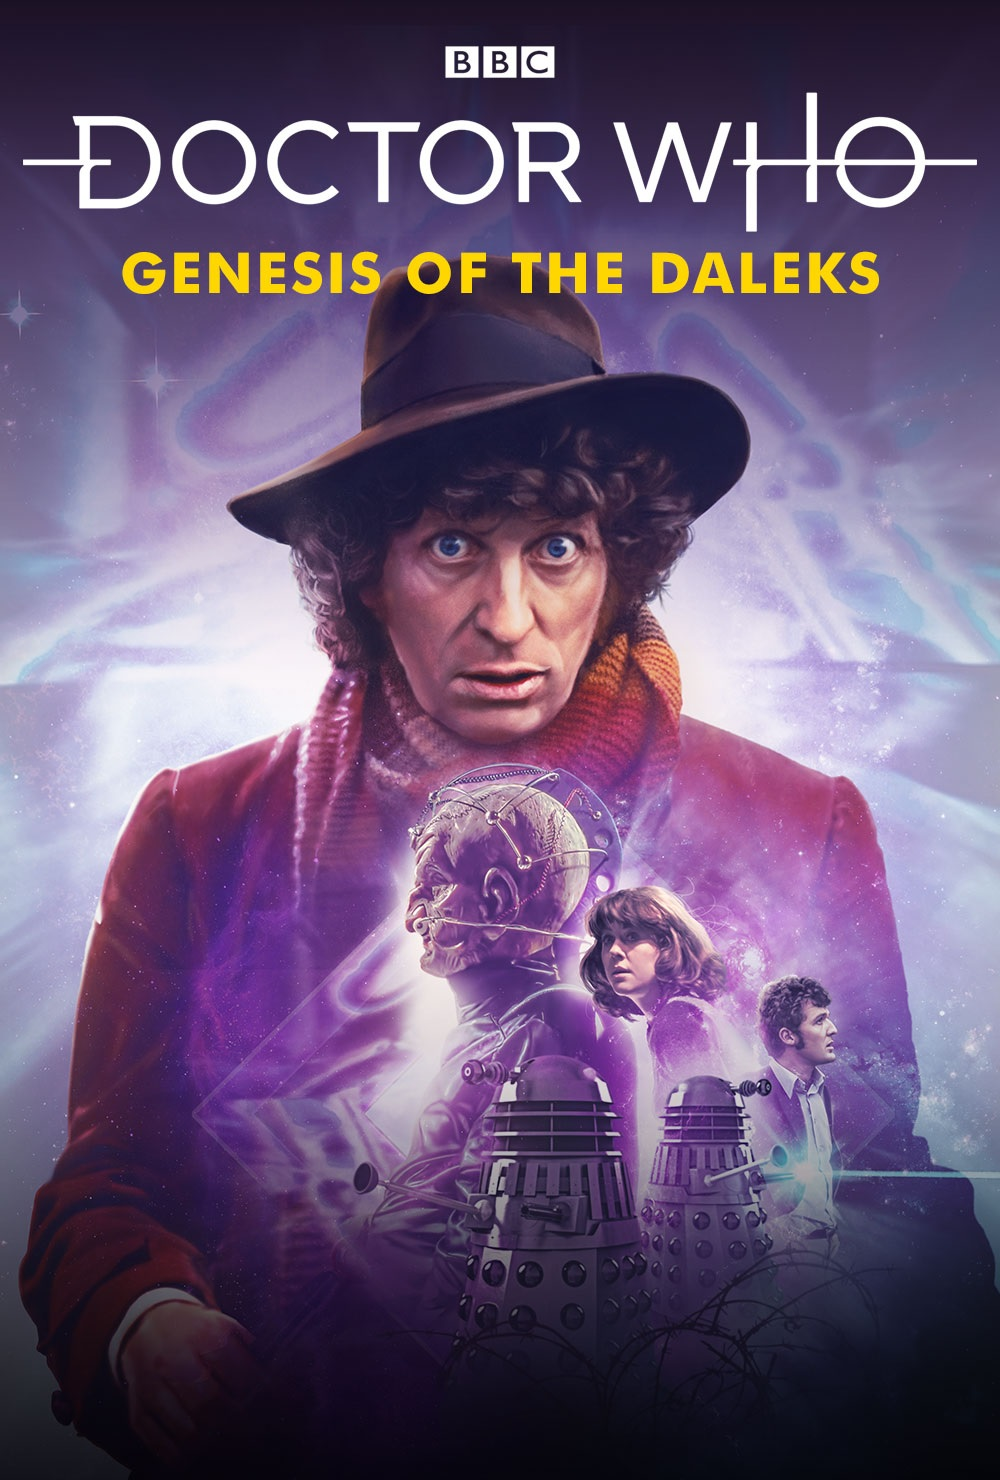 Genesis of the Daleks playing at the BFI this June